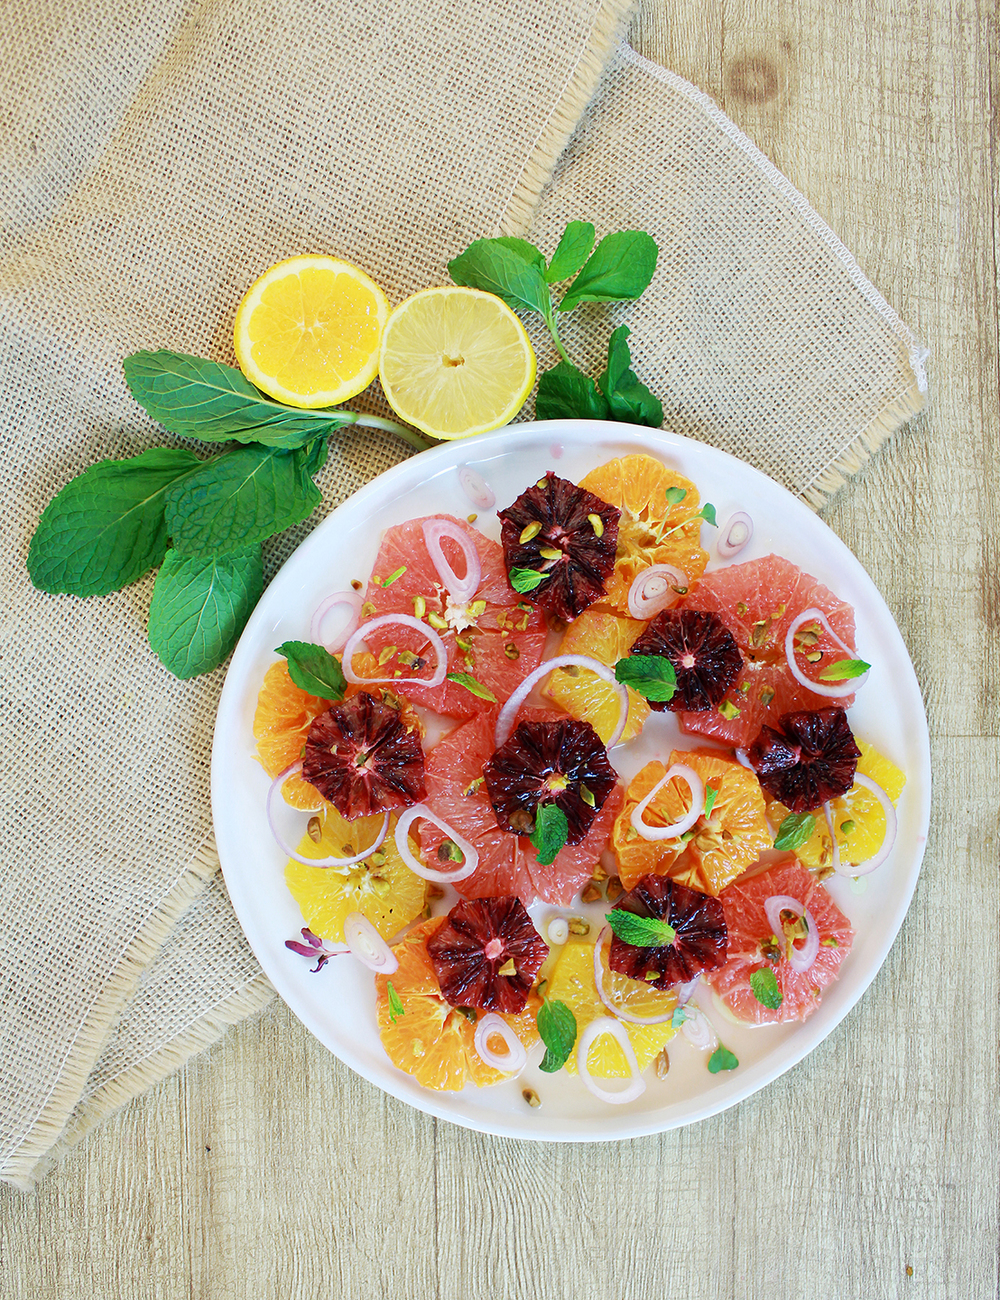 And voila!, a refreshing citrus salad for a warm summer day!